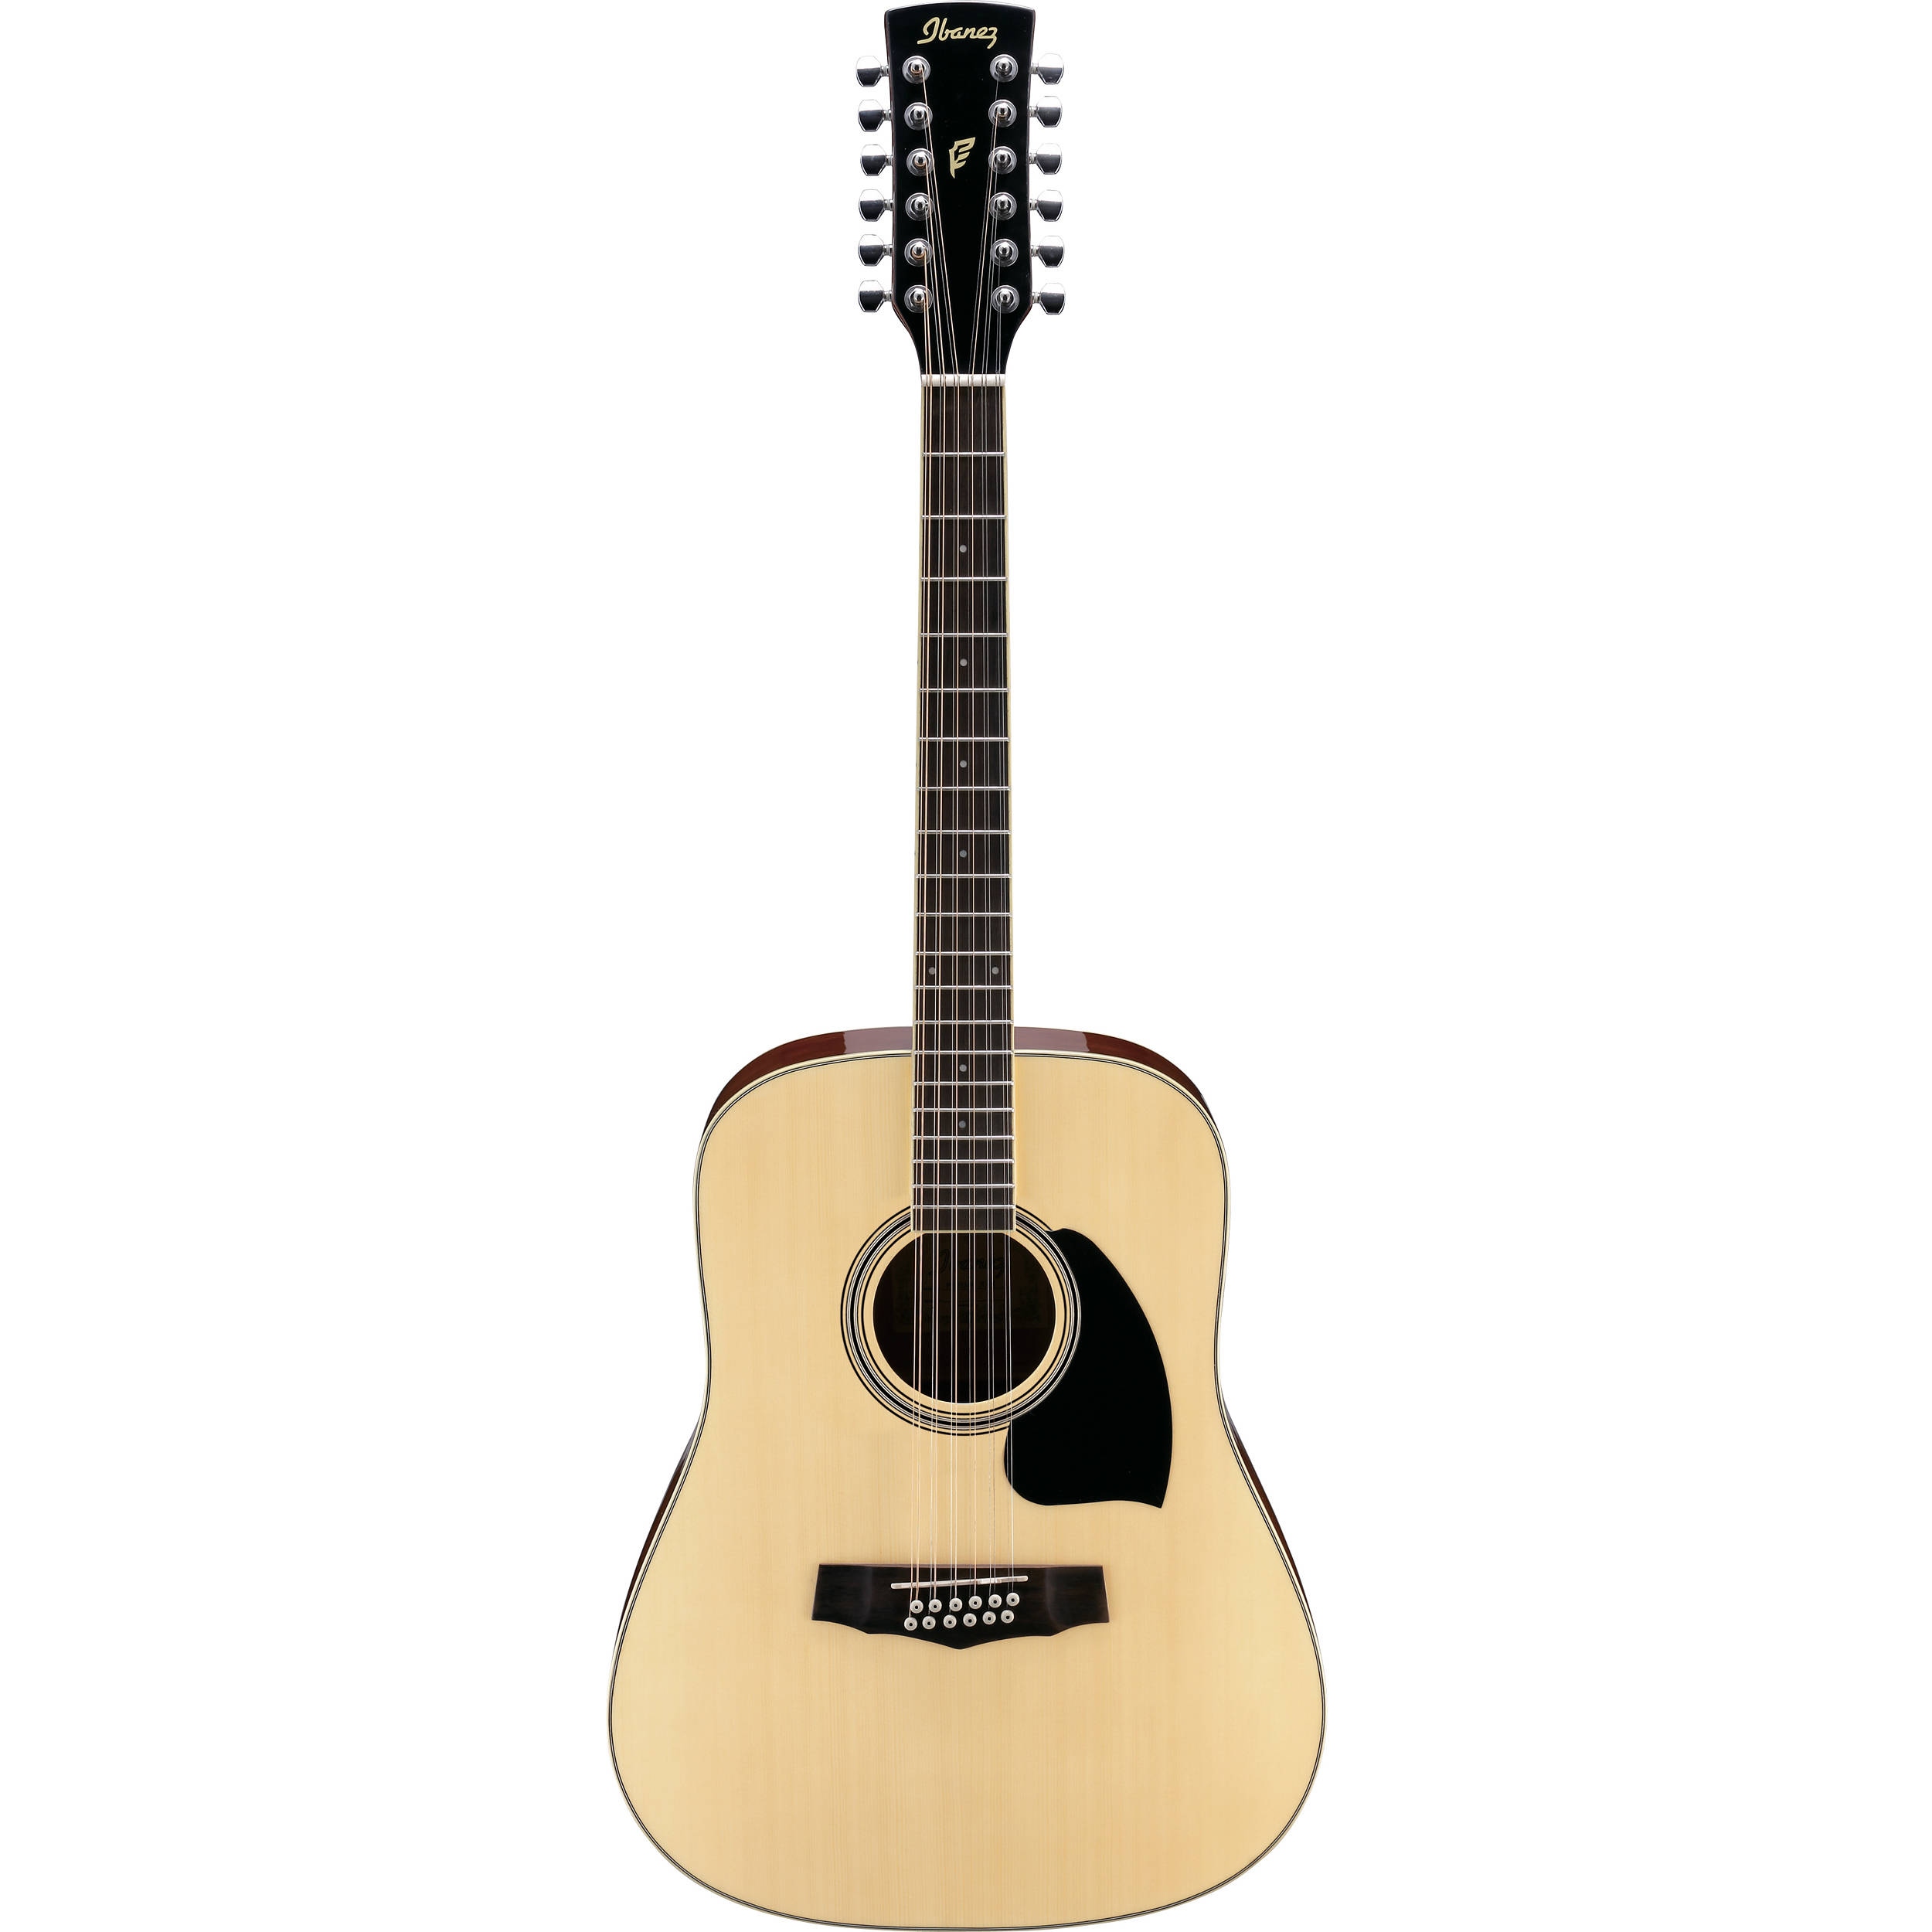 ibanez pf1512 pf performance series 12 string acoustic pf1512nt. Black Bedroom Furniture Sets. Home Design Ideas